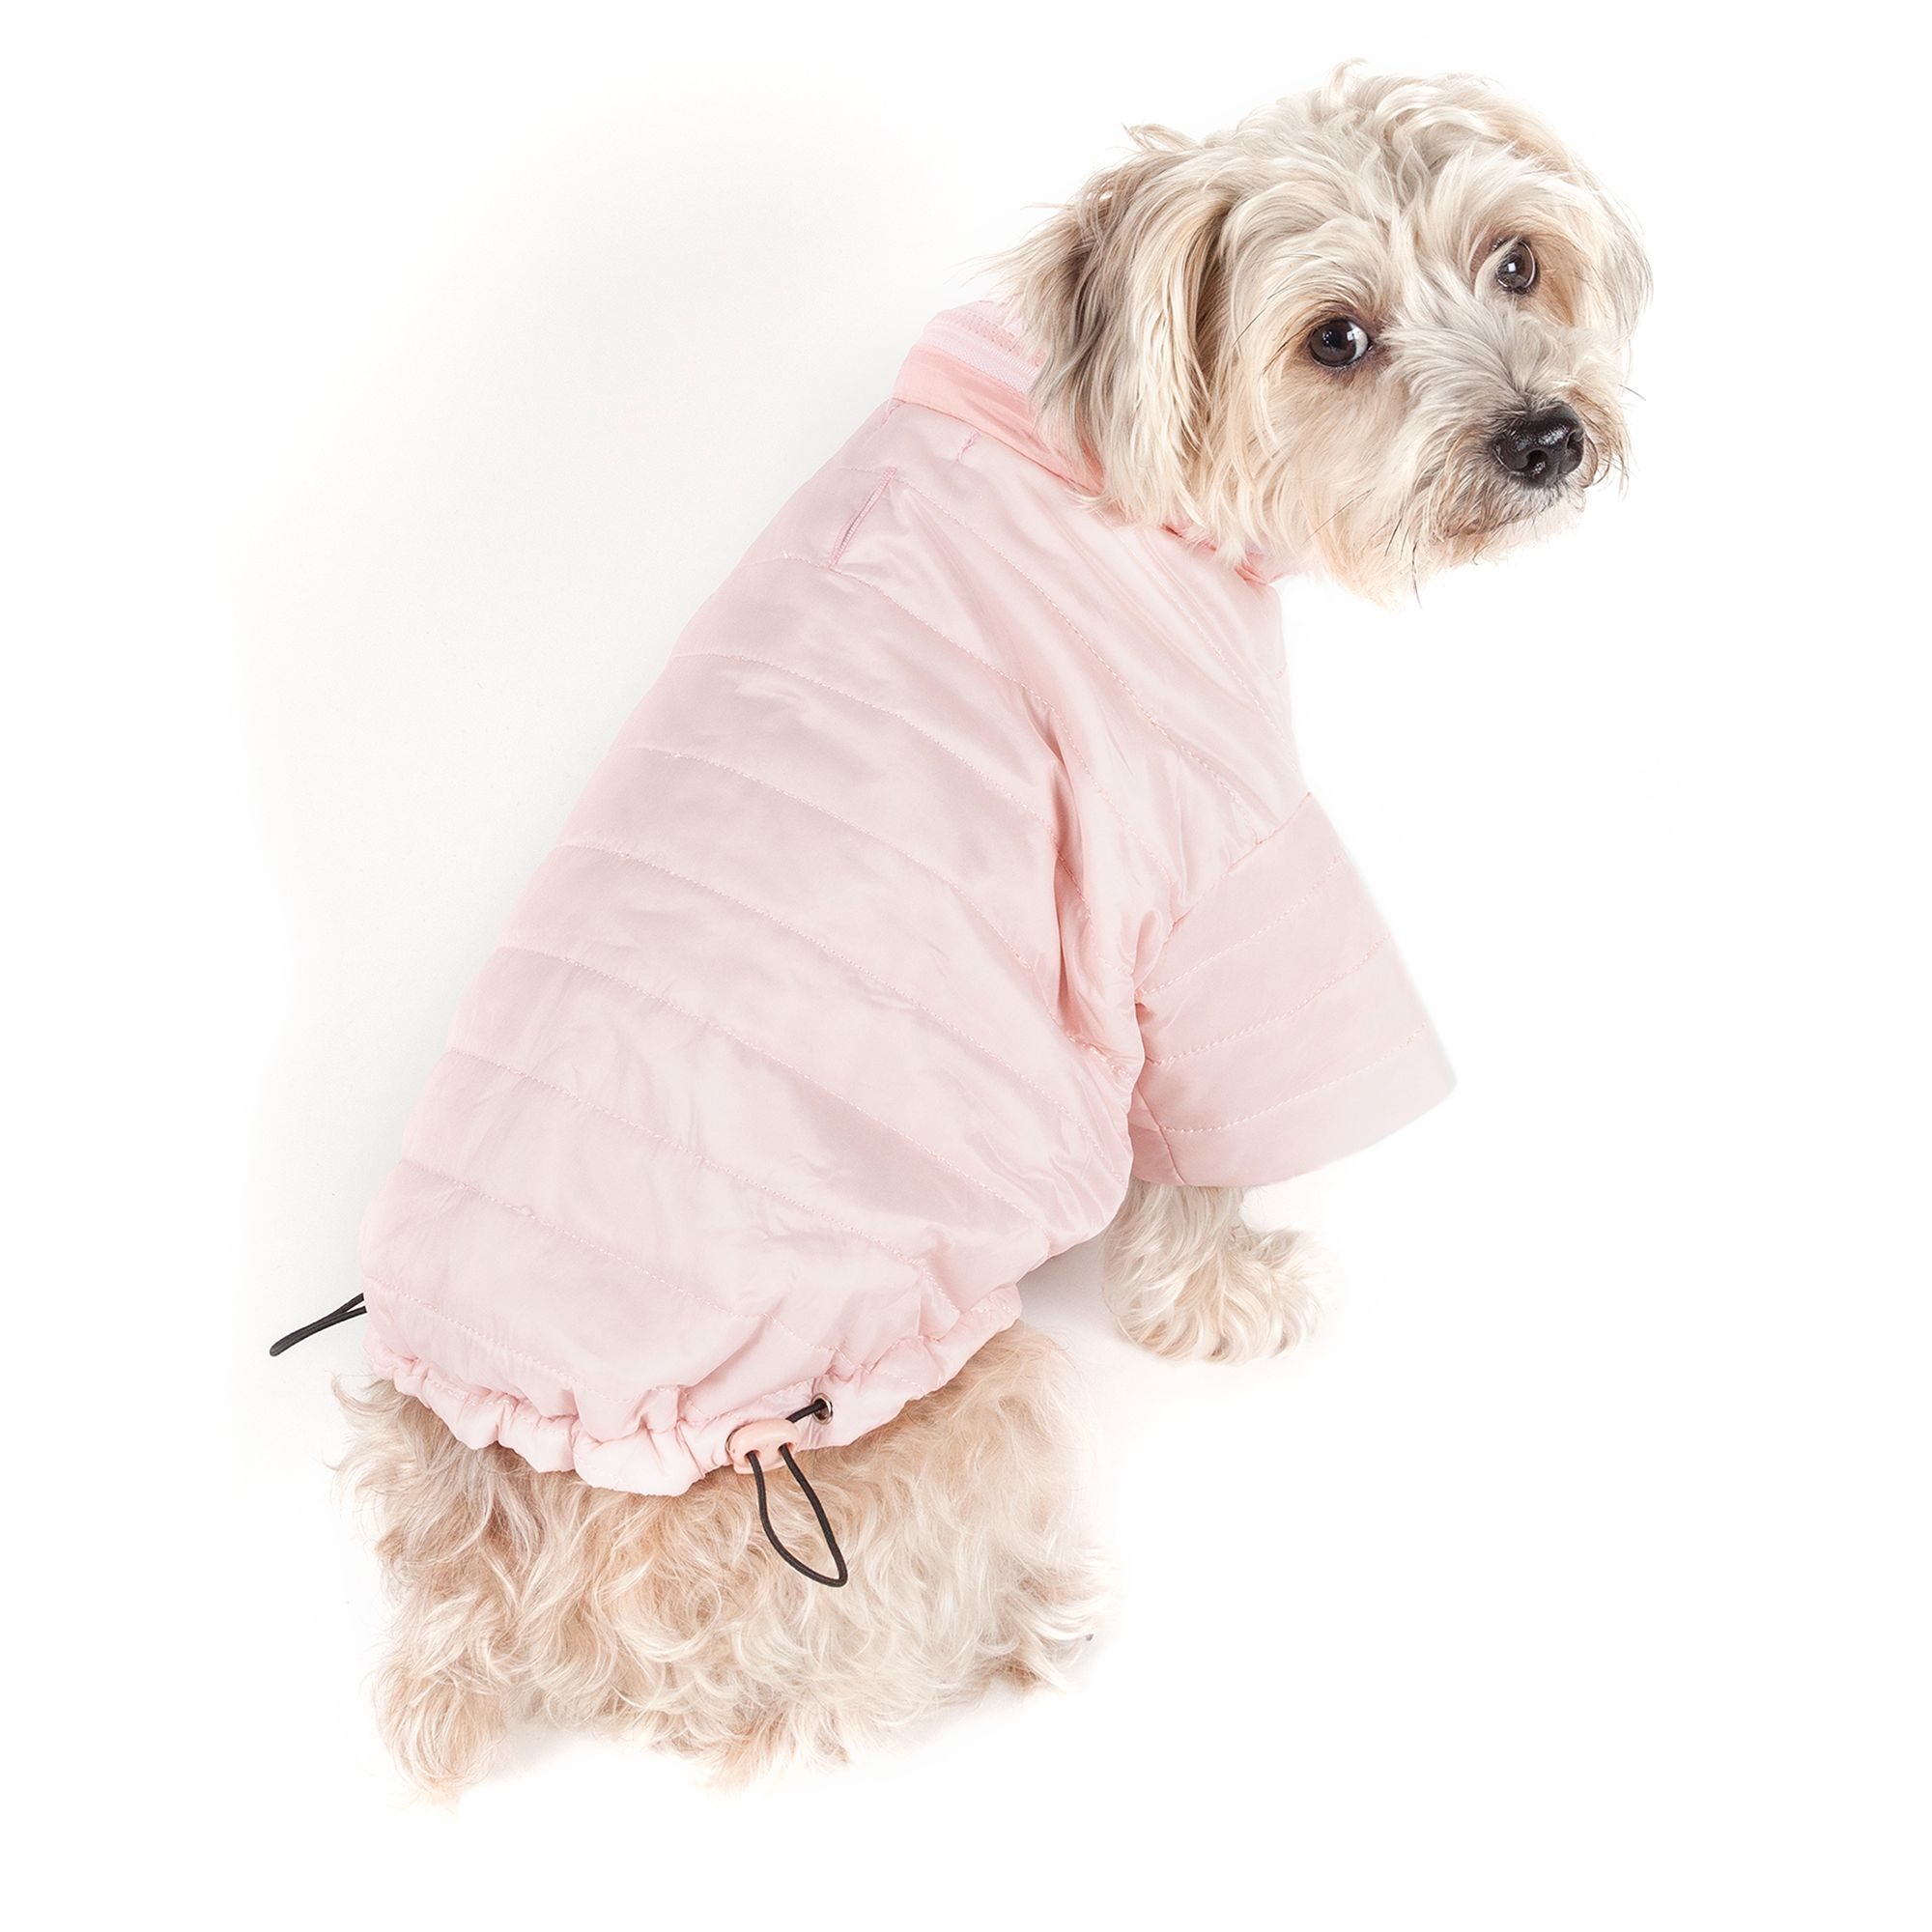 Pet Life Lightweight Sporty Avalanche Coat size: X Small, Pink, Top Paw 5227500